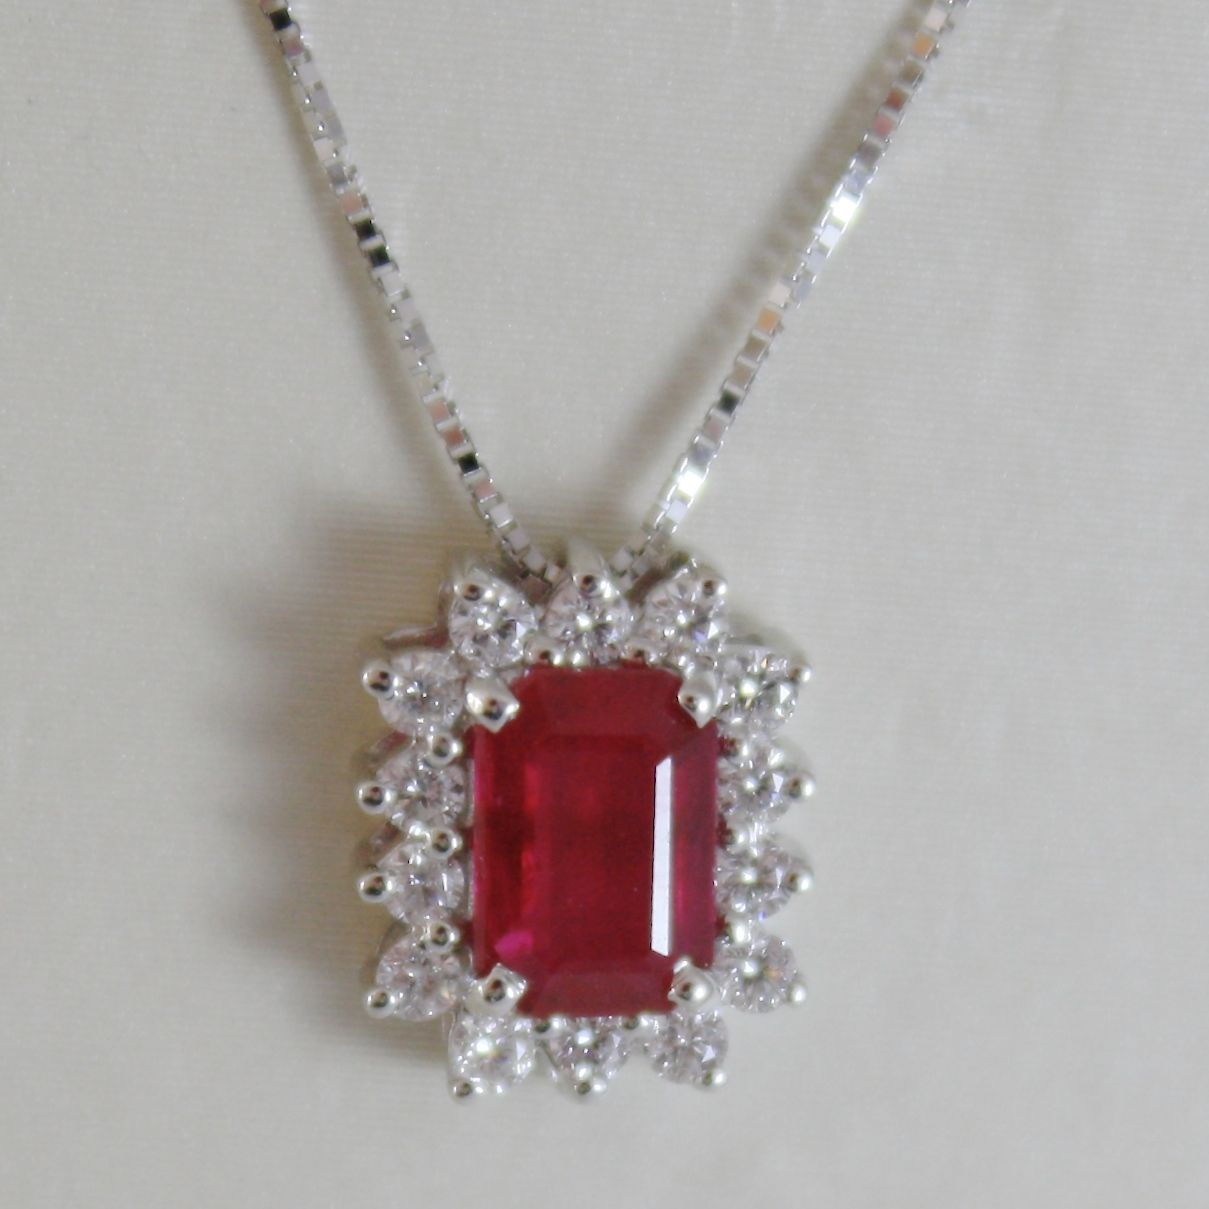 18K WHITE GOLD FLOWER NECKLACE DIAMOND & EMERALD RED RUBY 0.92 MADE IN ITALY